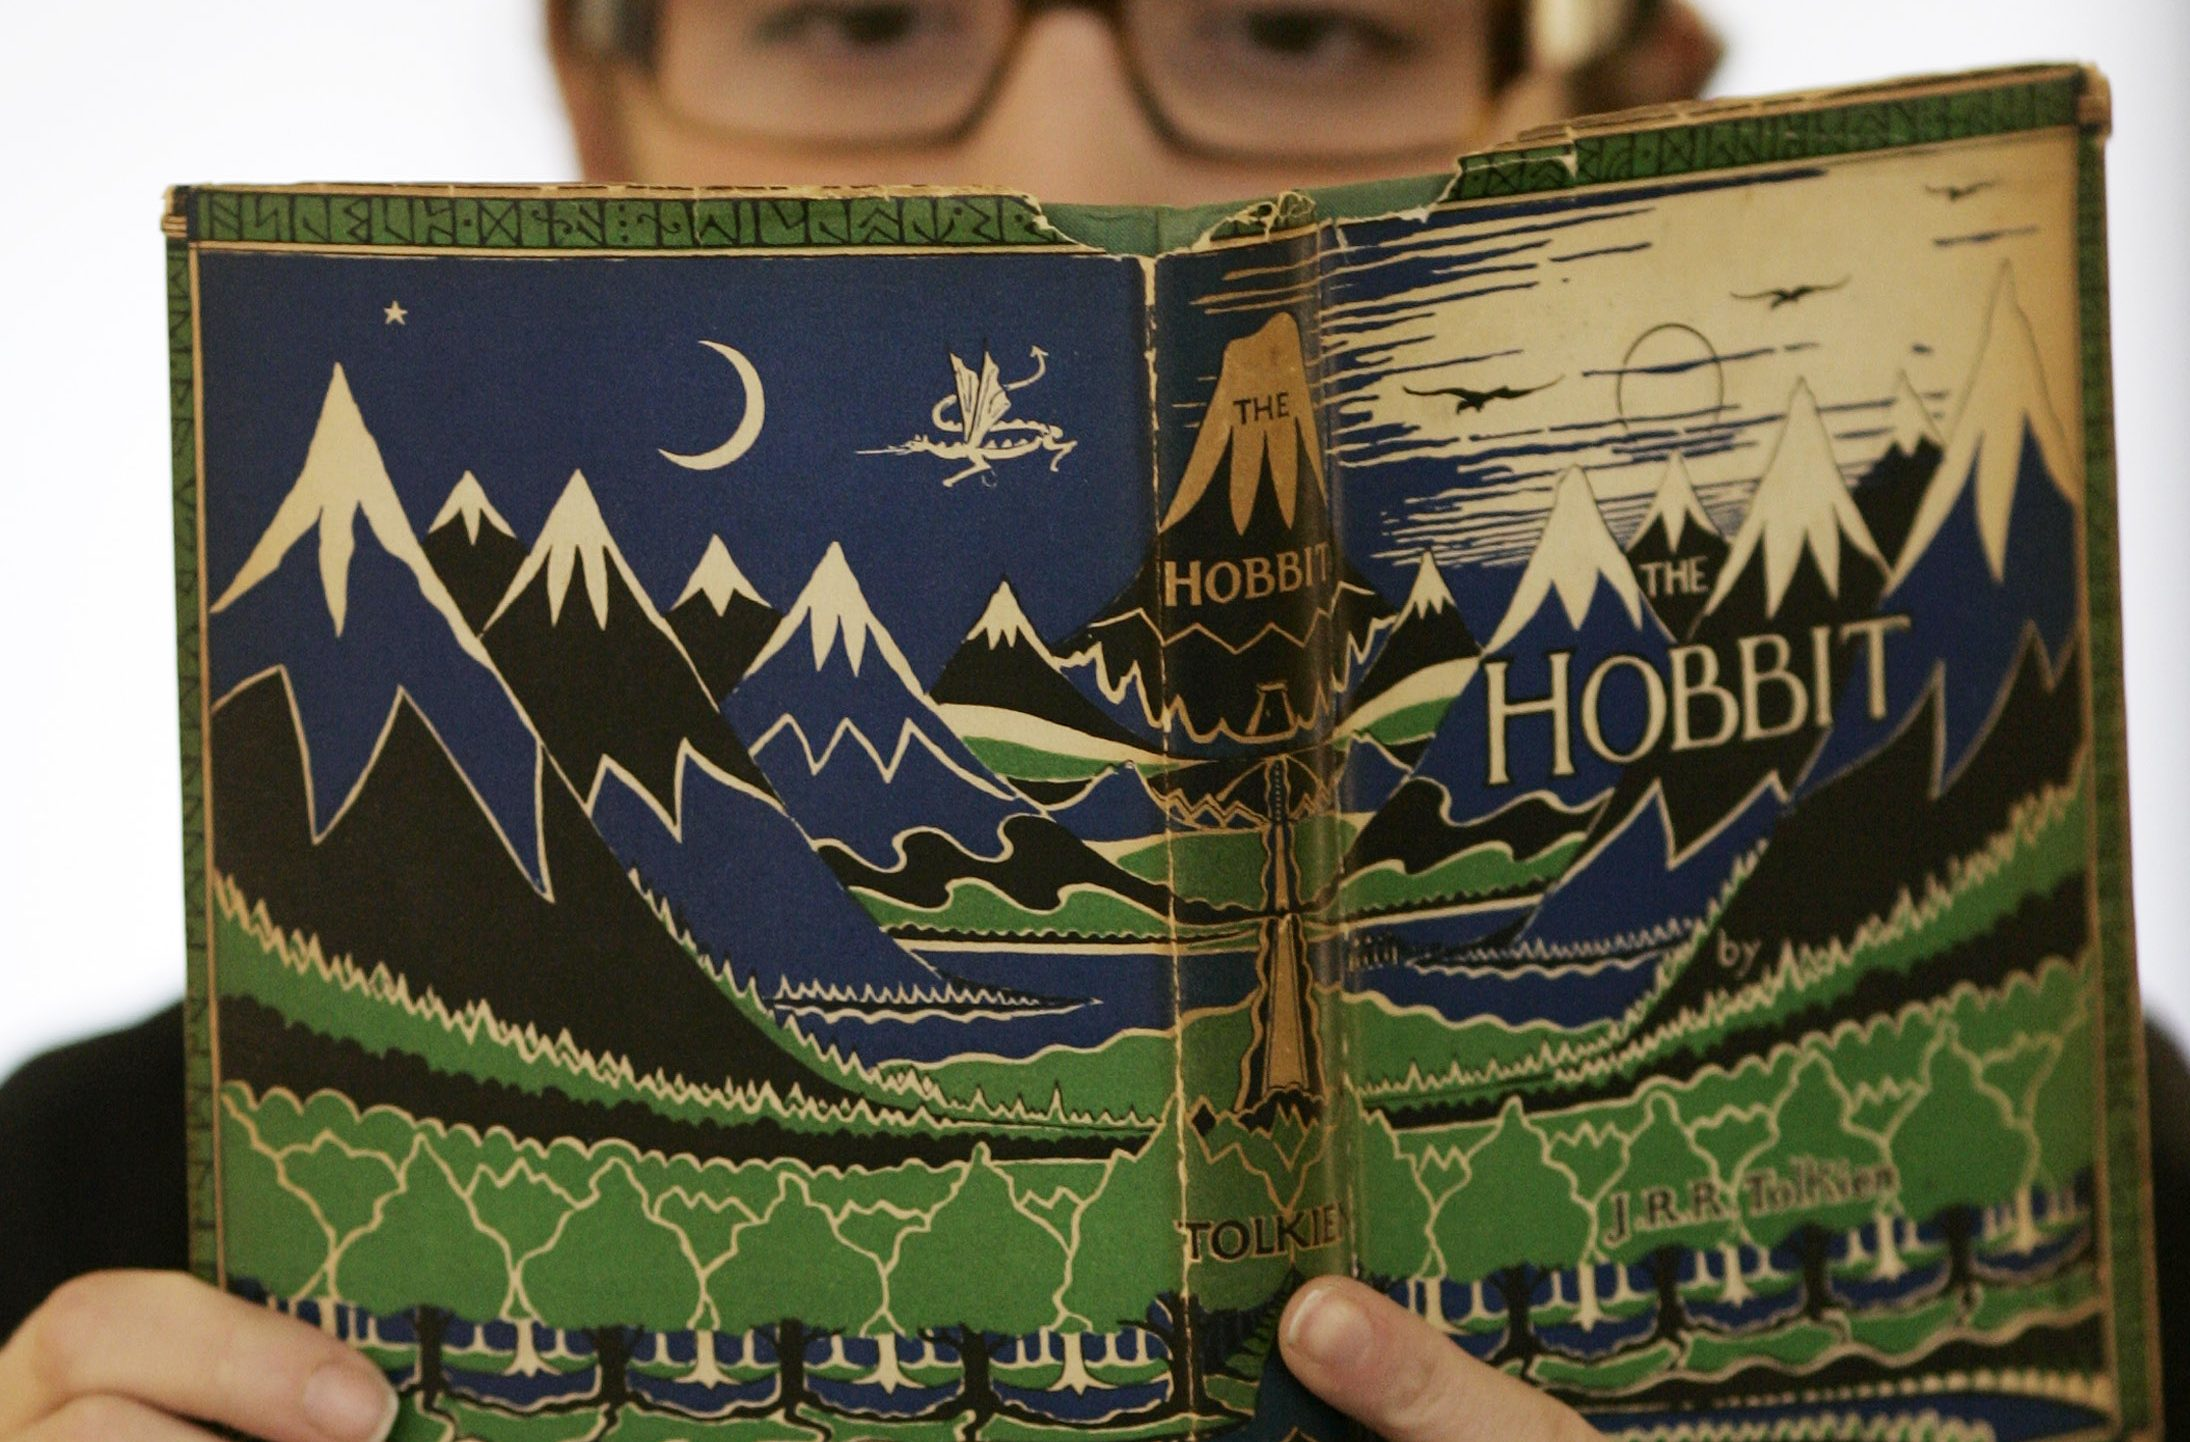 Joy Asfar, of the auction house Bonhams examines a copy of the 1937 first issue of the first edition of 'The Hobbit' by author J.R.R. Tolkien on display at the auction house in London, in this March 17, 2008 file photo.